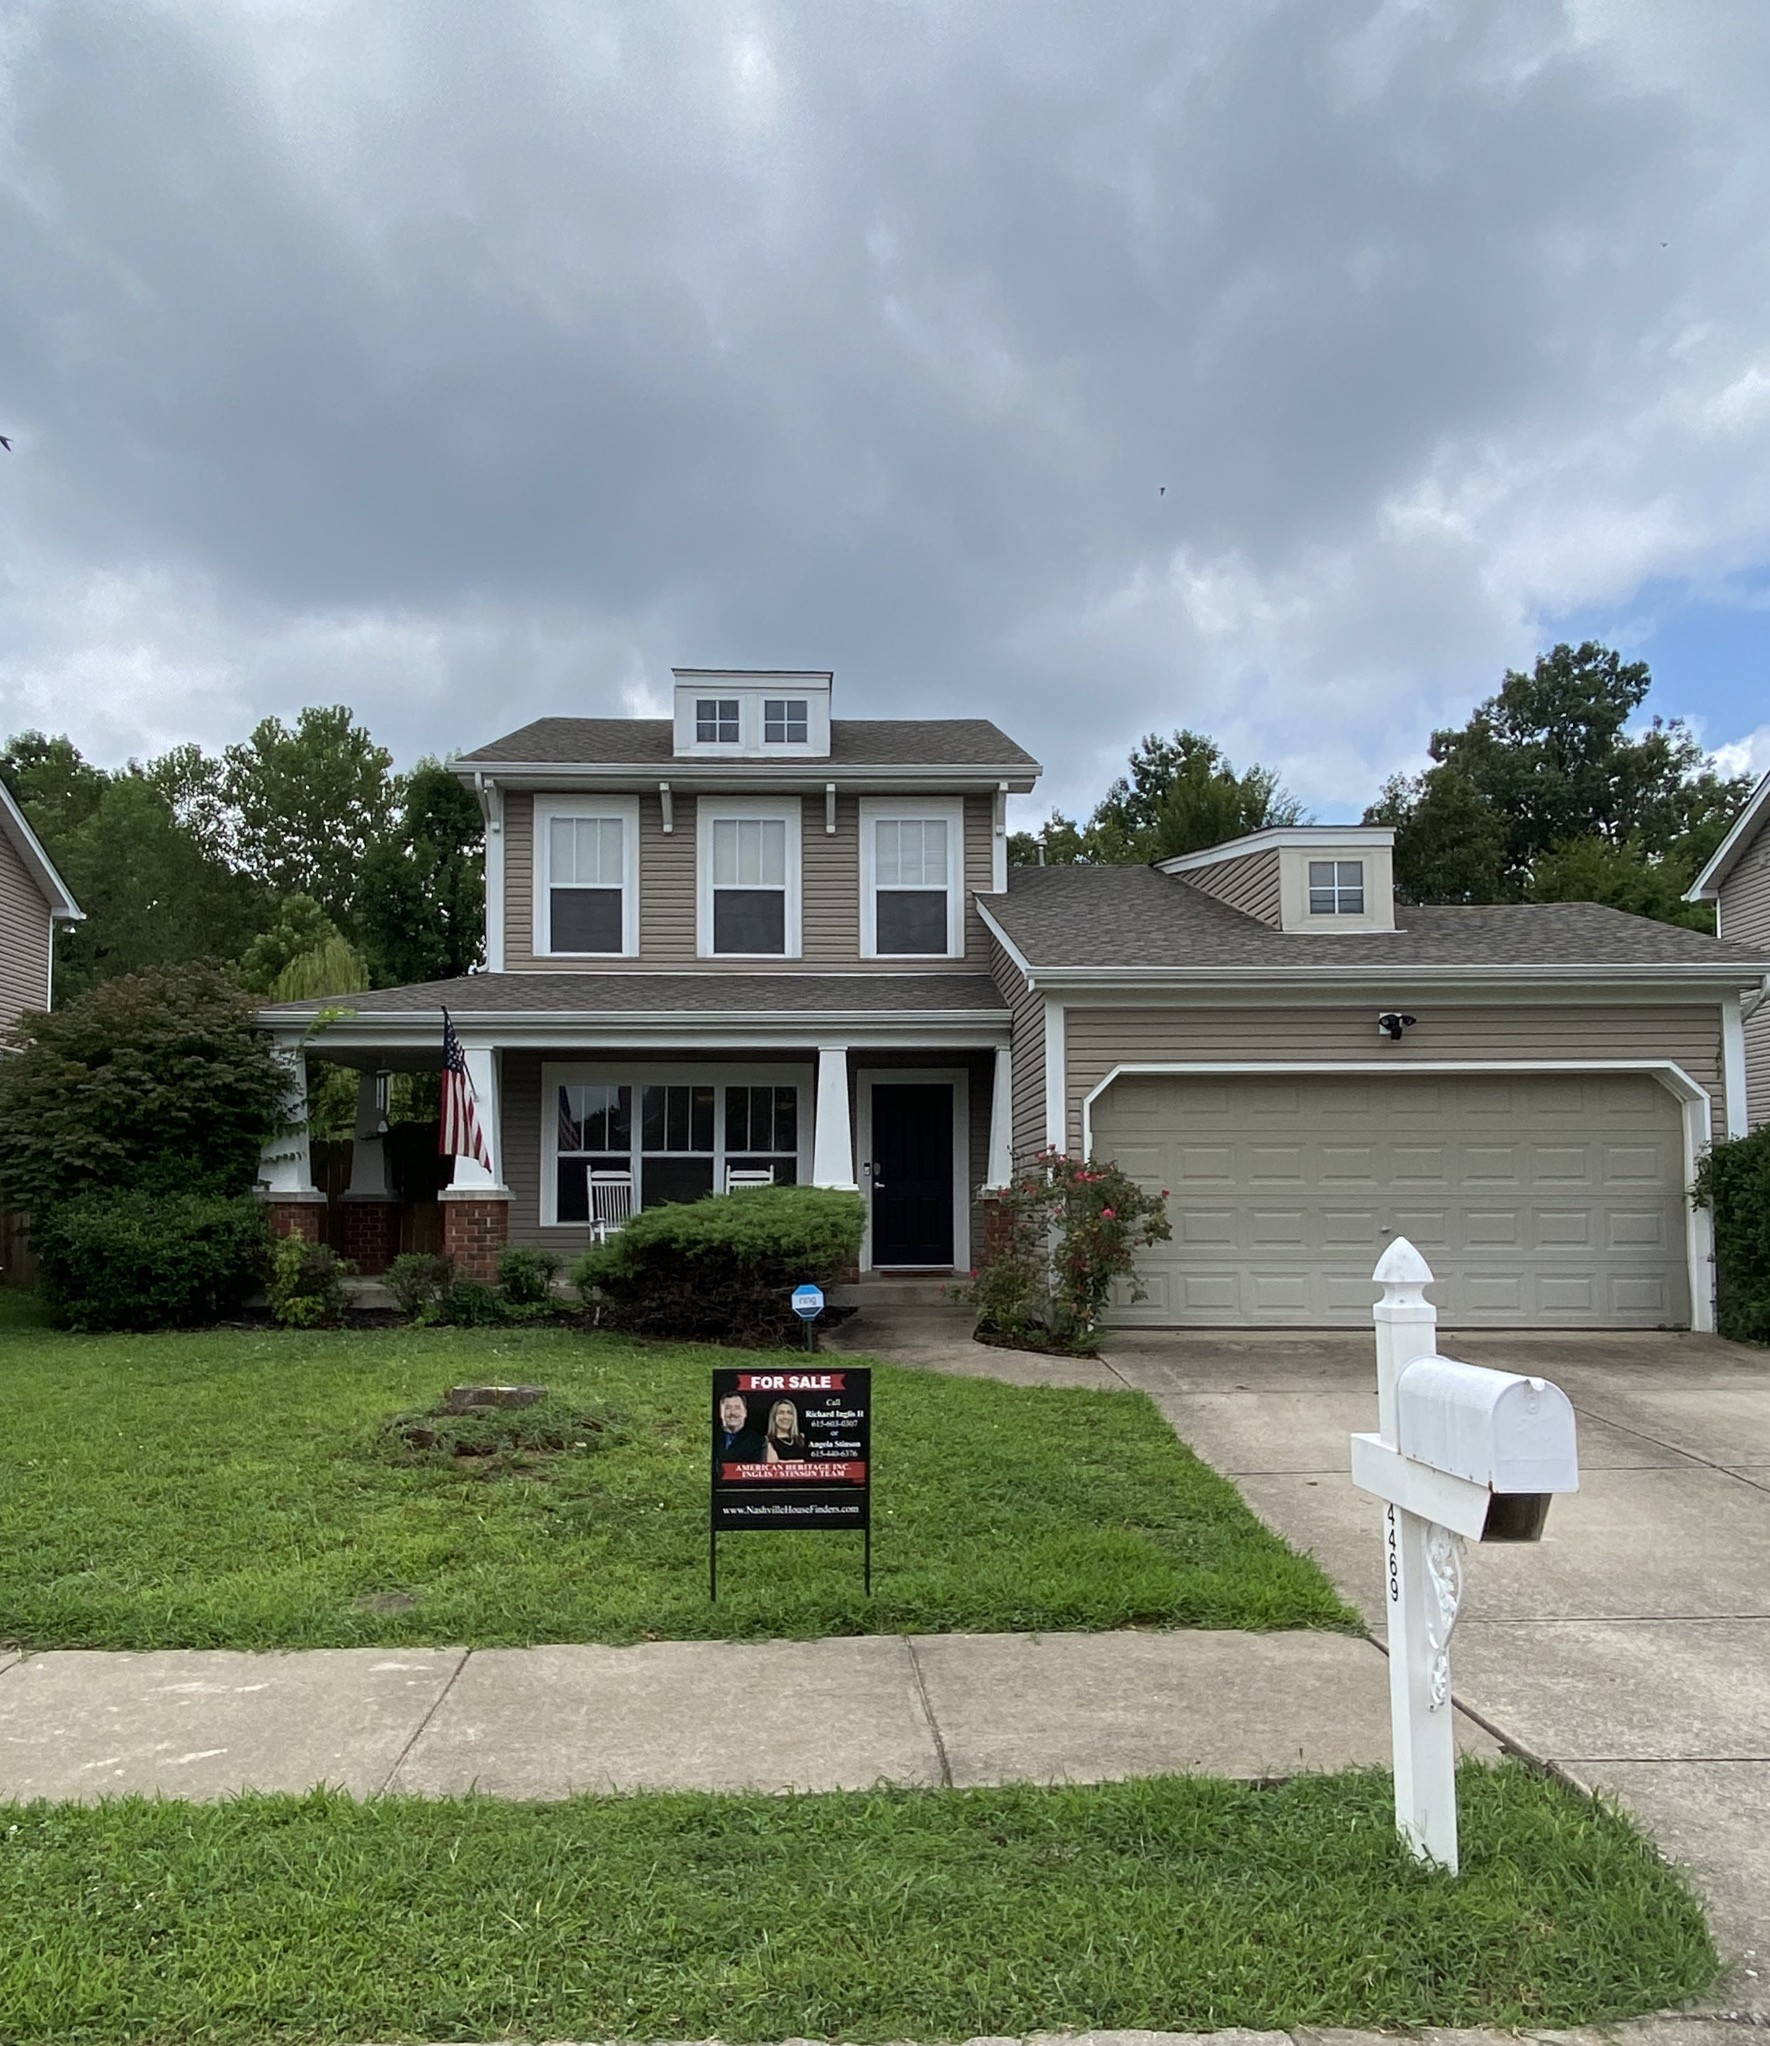 From The Covered Porch To the Sprawling Patio * Large Privacy Fenced Backyard this home Invites you to stay*  Master Suite on The Main Level* New Roof in 2017 * New Black Stainless Appliances * New Flooring Throughout Bottom* New Hot Water Heater